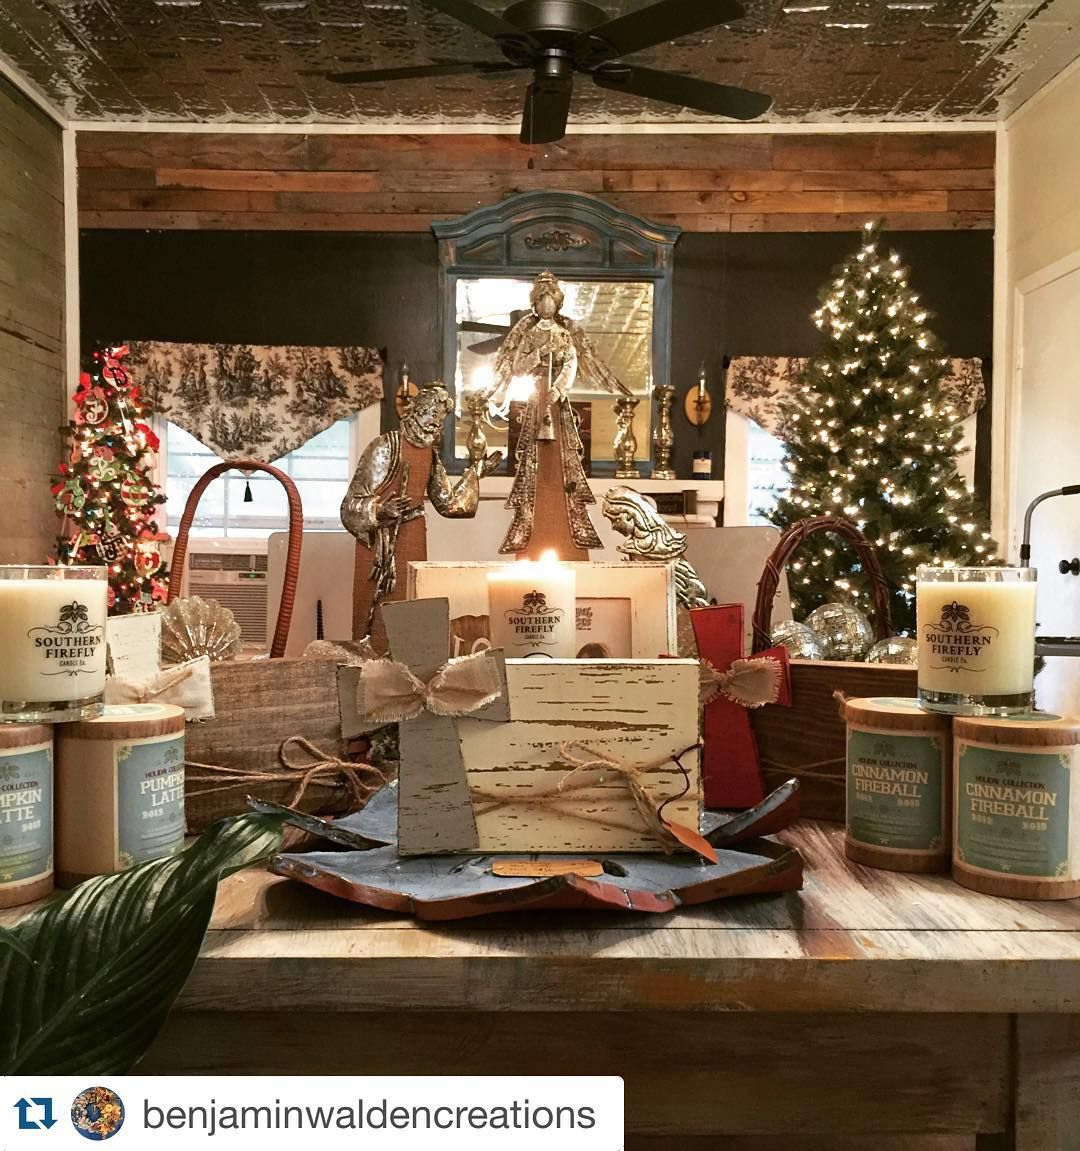 So excited for our newest merchant location @benjaminwaldencreations  Grand Opening and Open house is this Thursday! November 12th starting at 5pm. I hope to see everyone there!! We have lots of great items and more to come!!! We are so excited!!! @southernfireflycandle